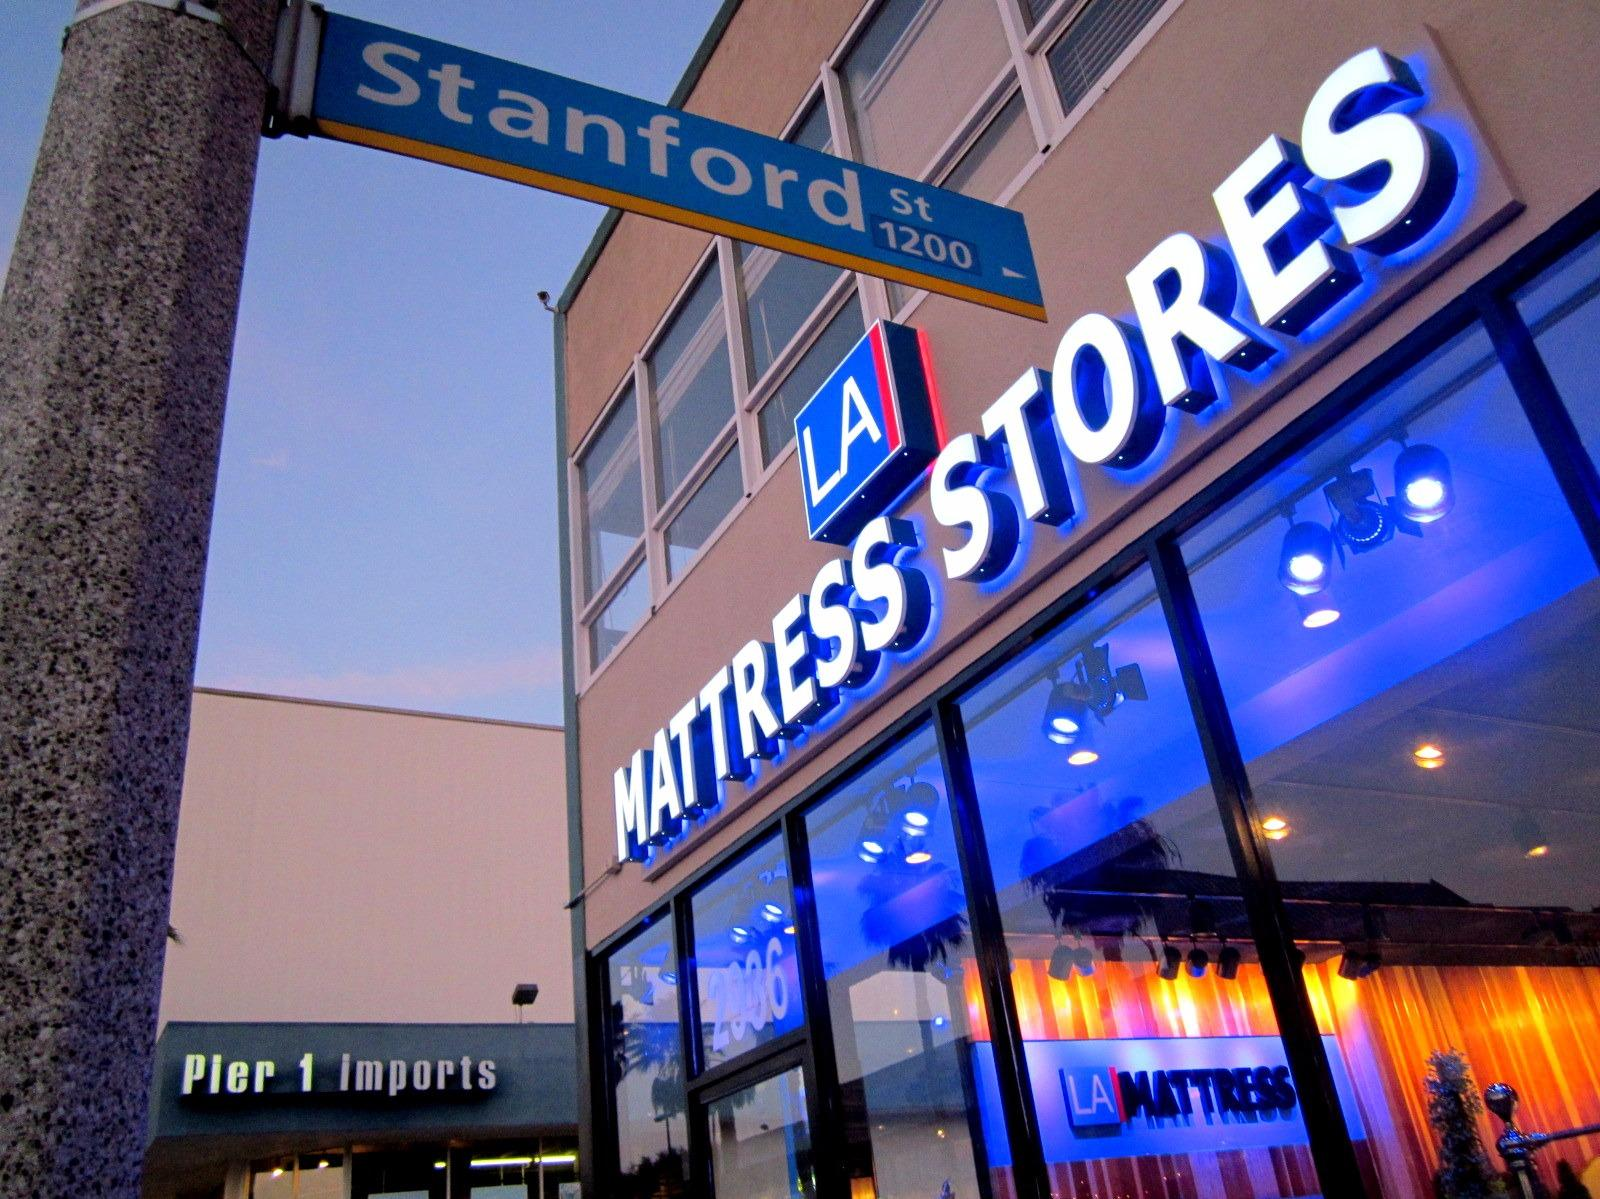 Los Angeles Mattress Stores Coupons near me in Santa